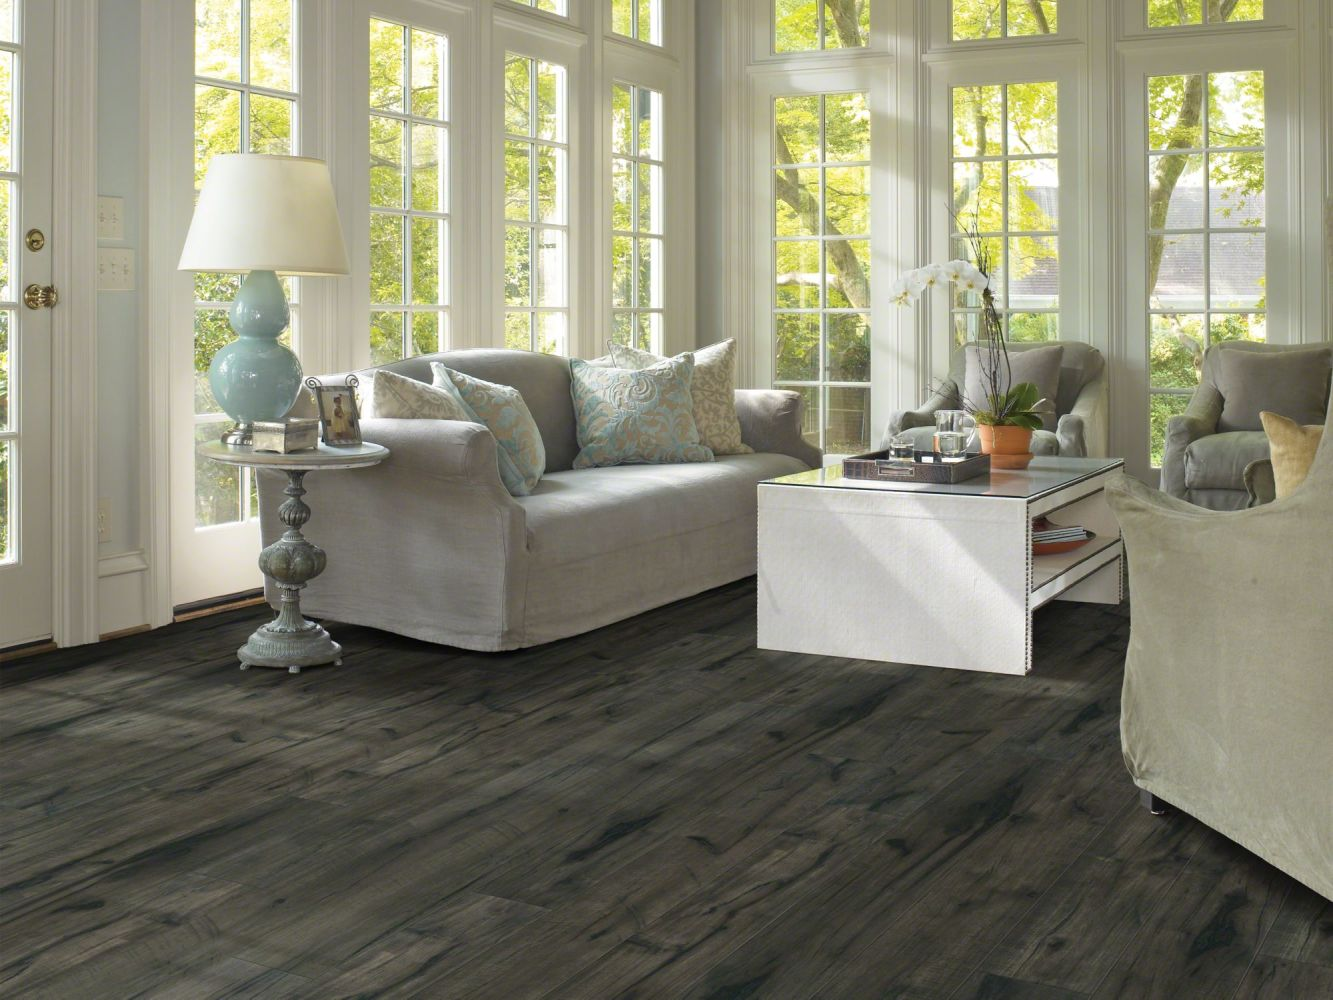 Shaw Floors Versalock Laminate Pinnacle Port Plus Midnight Hickory 09001_SL426